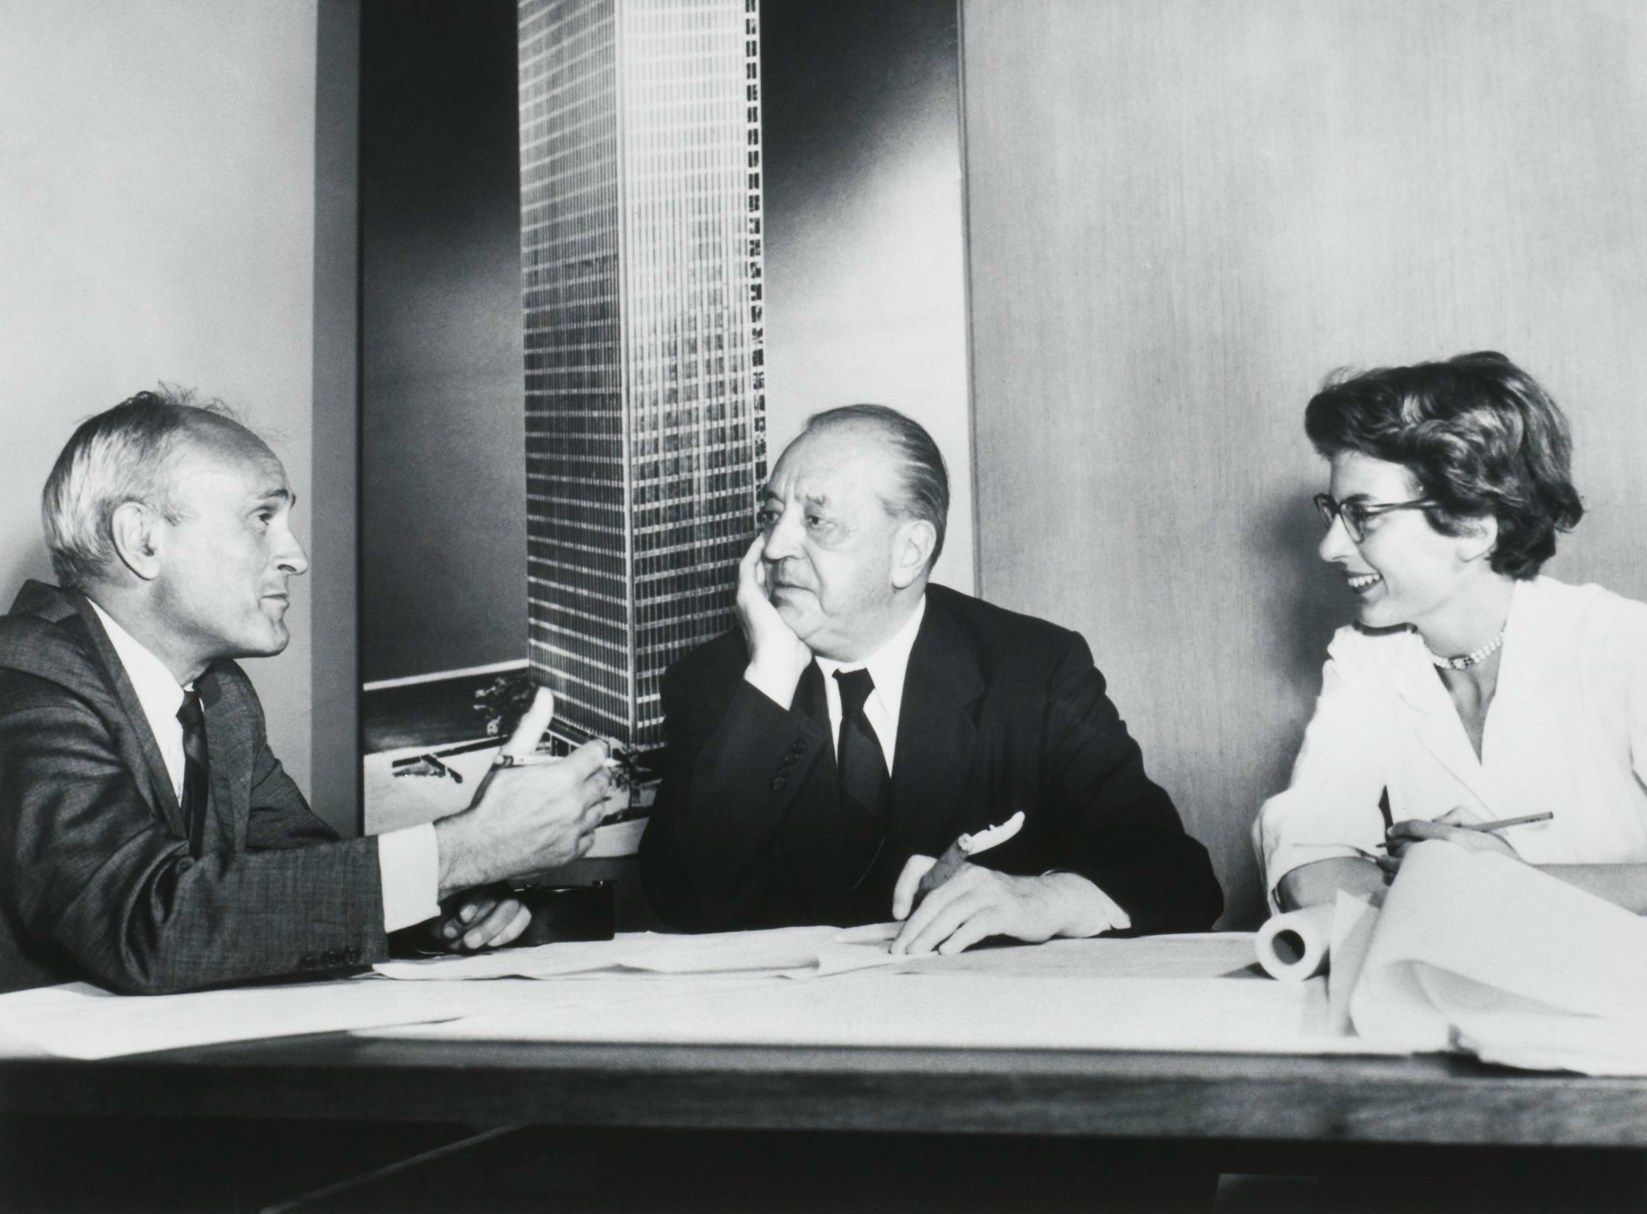 Philip Johnson, Ludwig Mies van der Rohe and Phyllis Lambert - Fonds Phyllis Lambert, Canadian Centre for Architecture, Montreal. ©United Press Intern